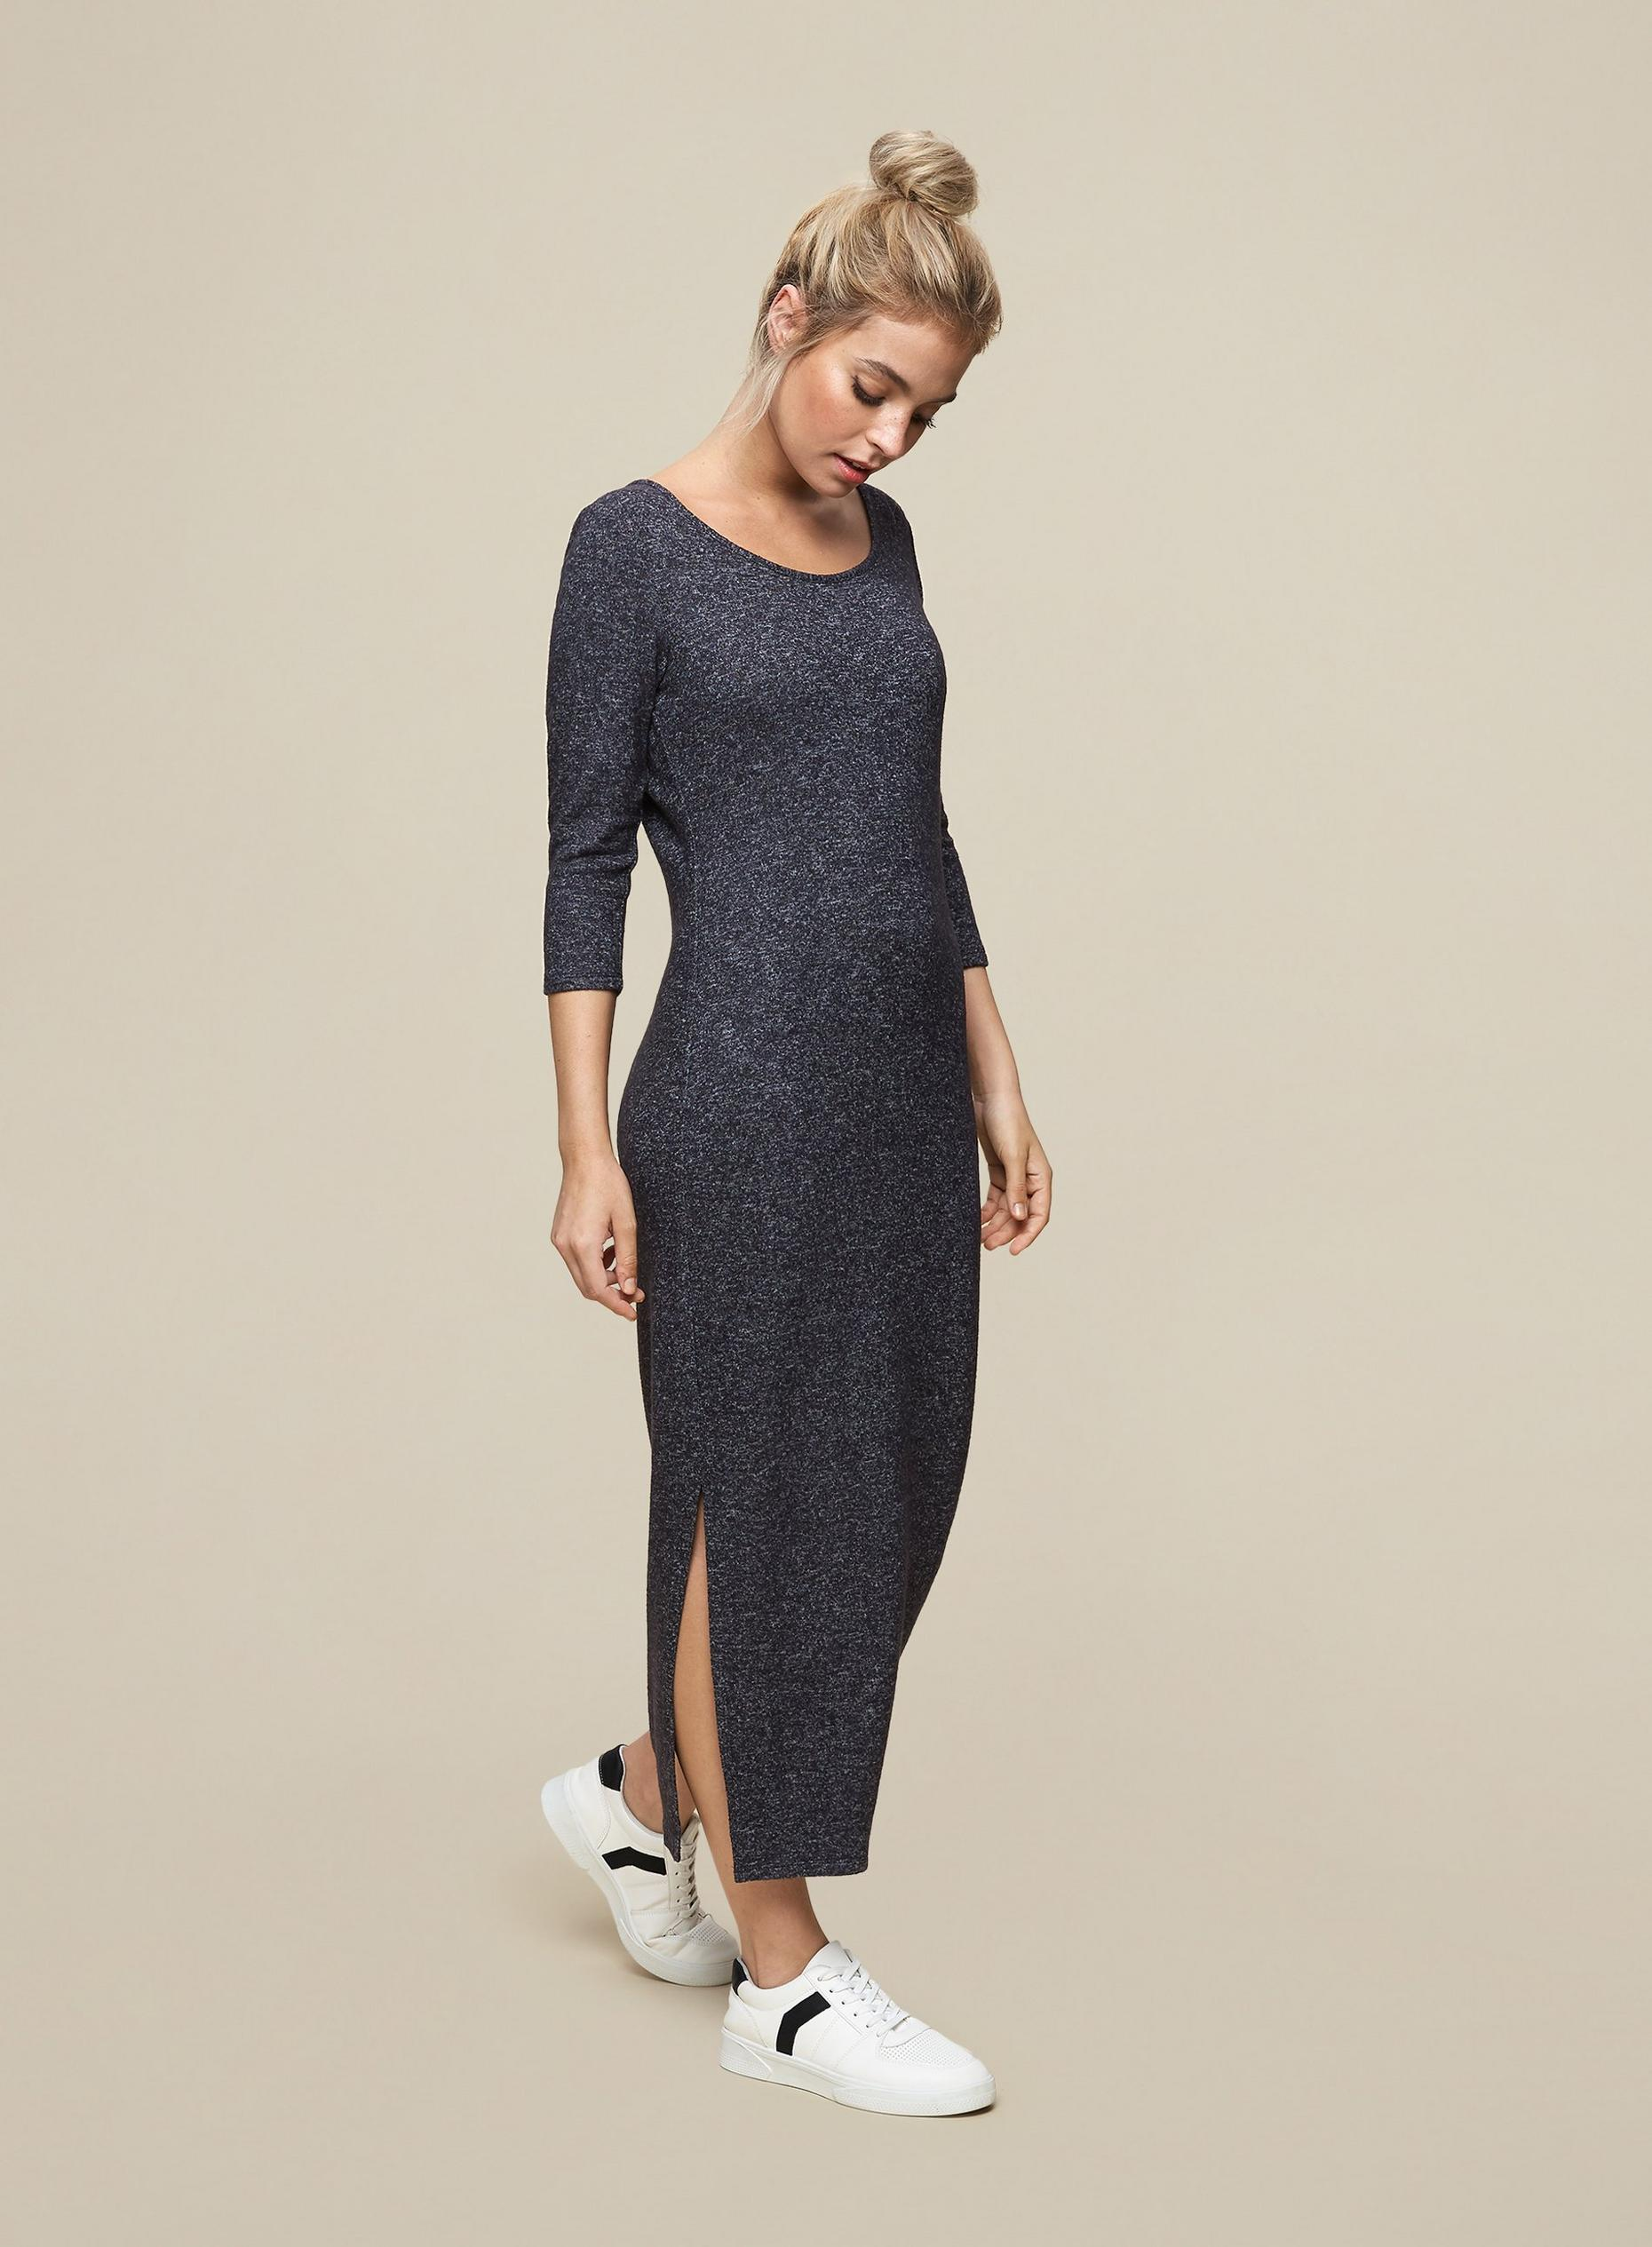 Petite Charcoal 3 Quarter Sleeve Brushed Midi